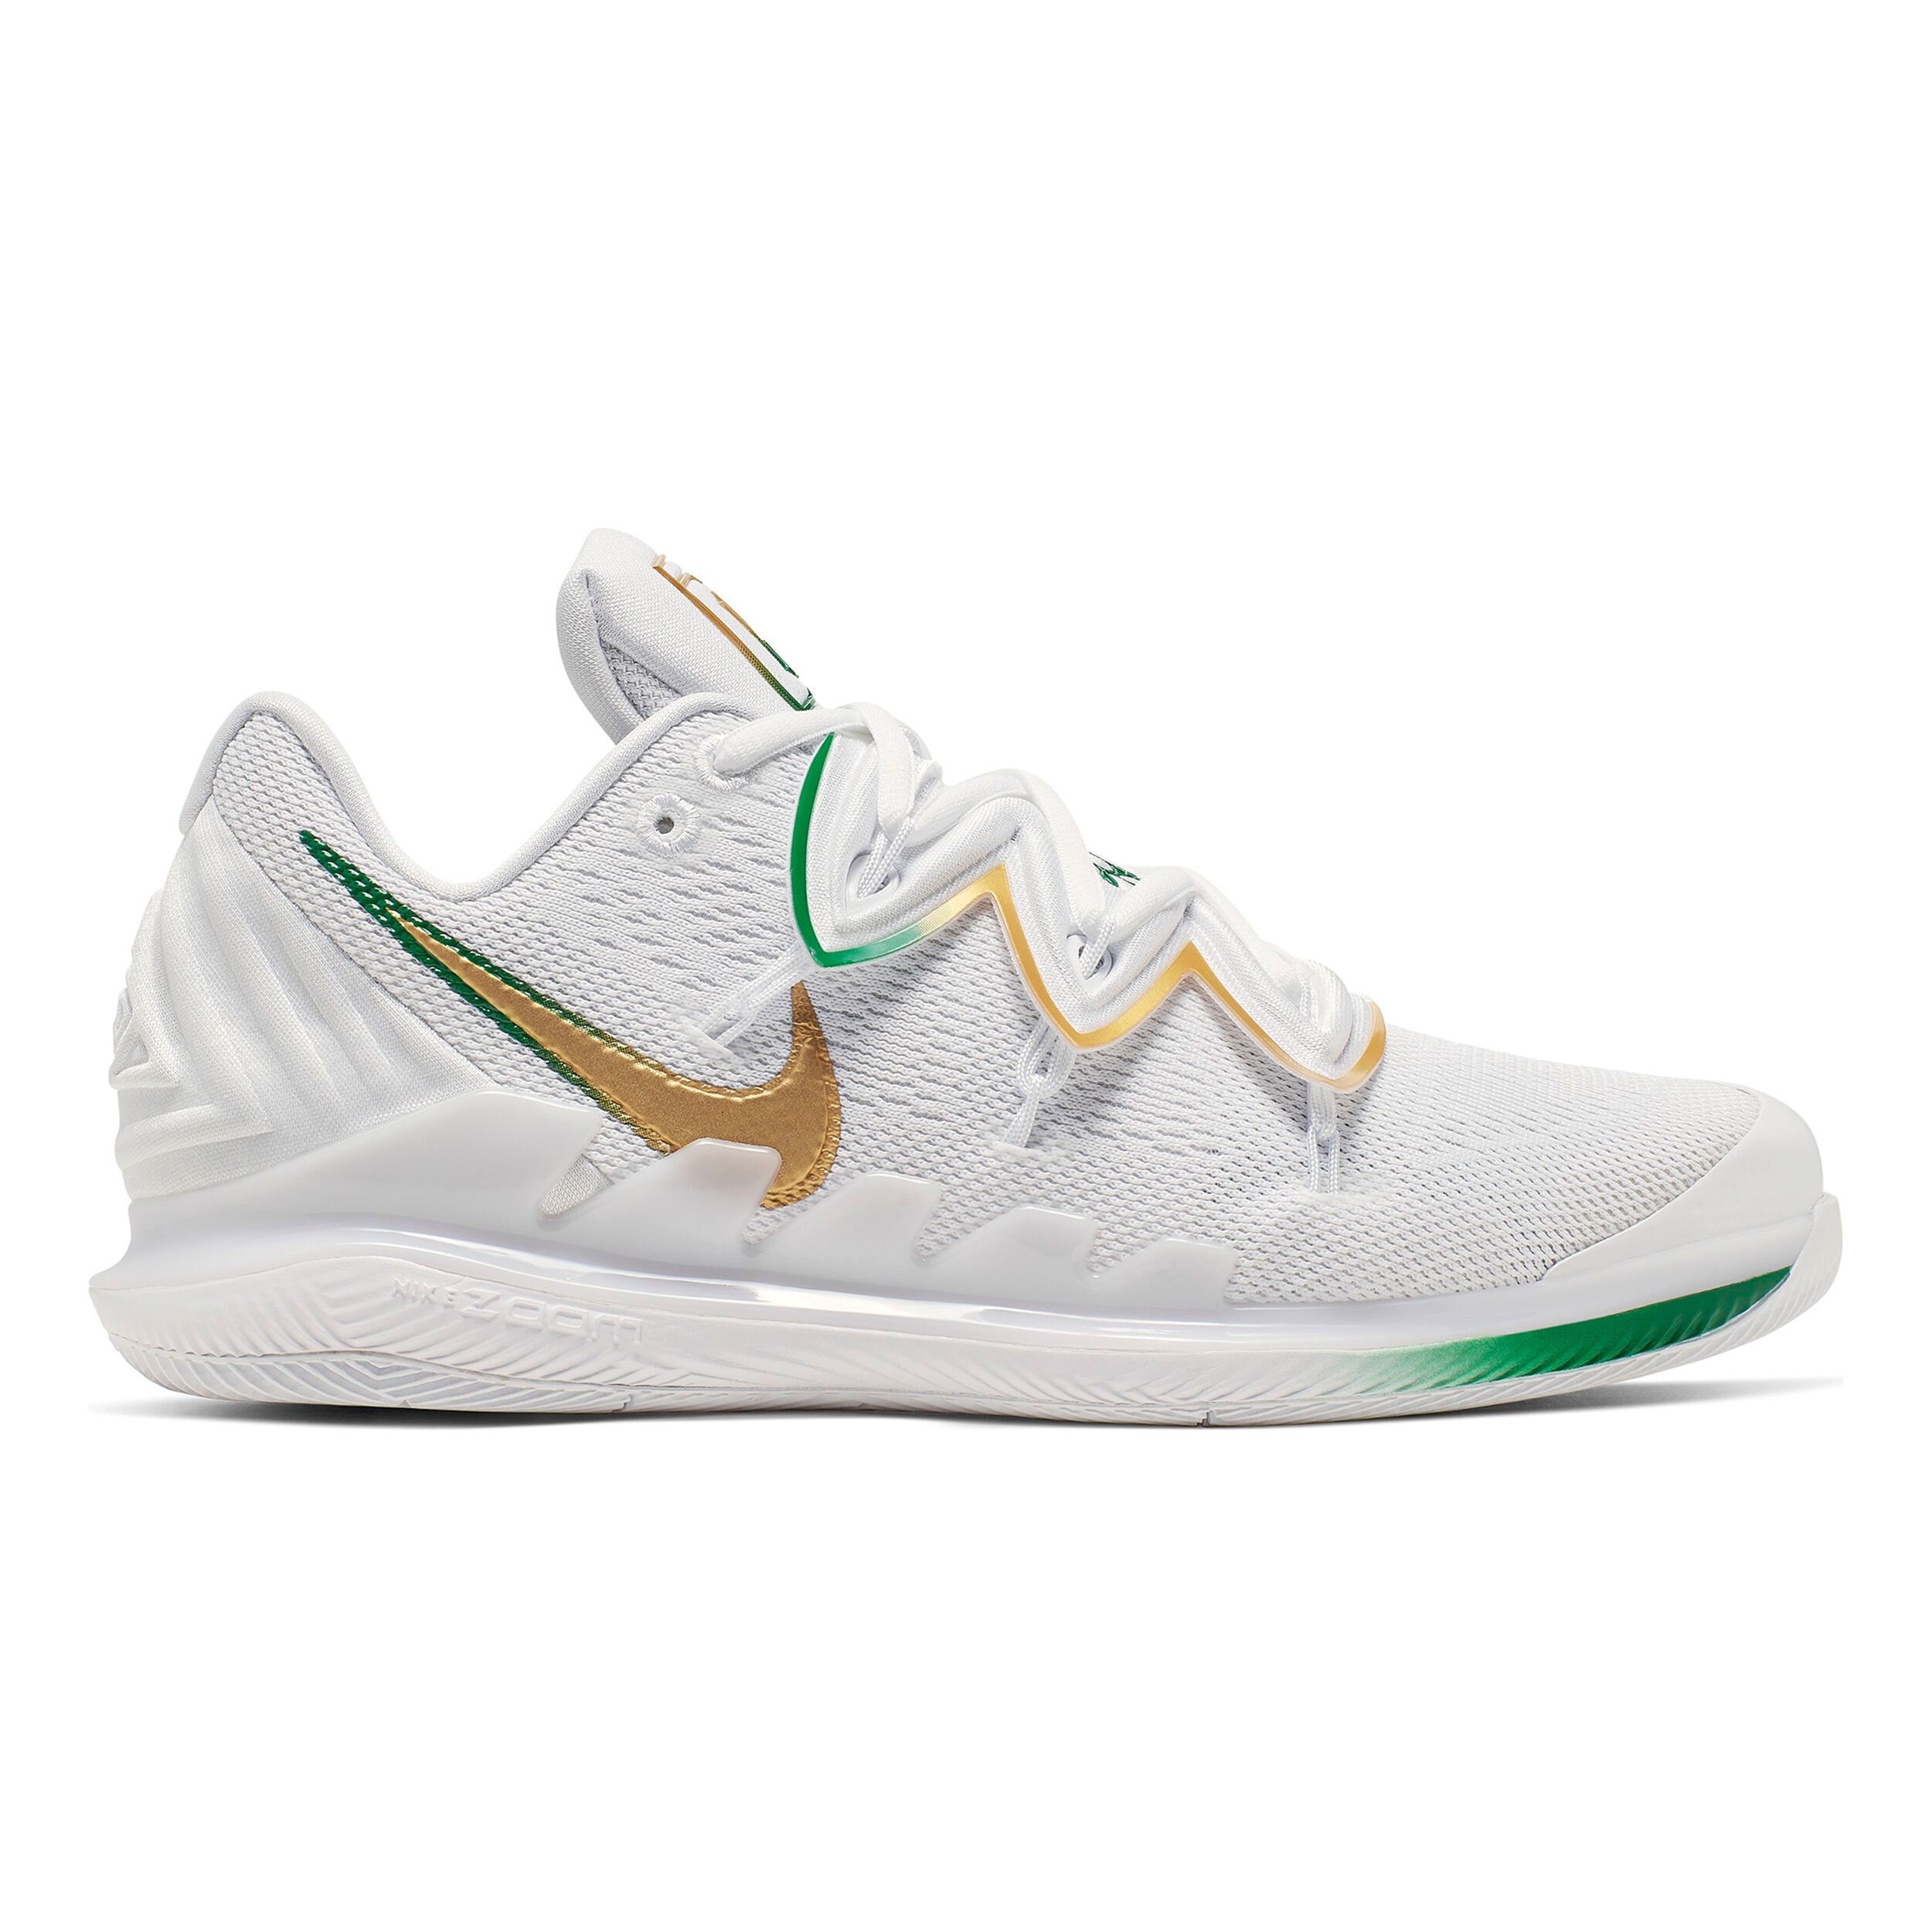 Nike Air Zoom Vapor X Kyrie V Chaussures Toutes Surfaces